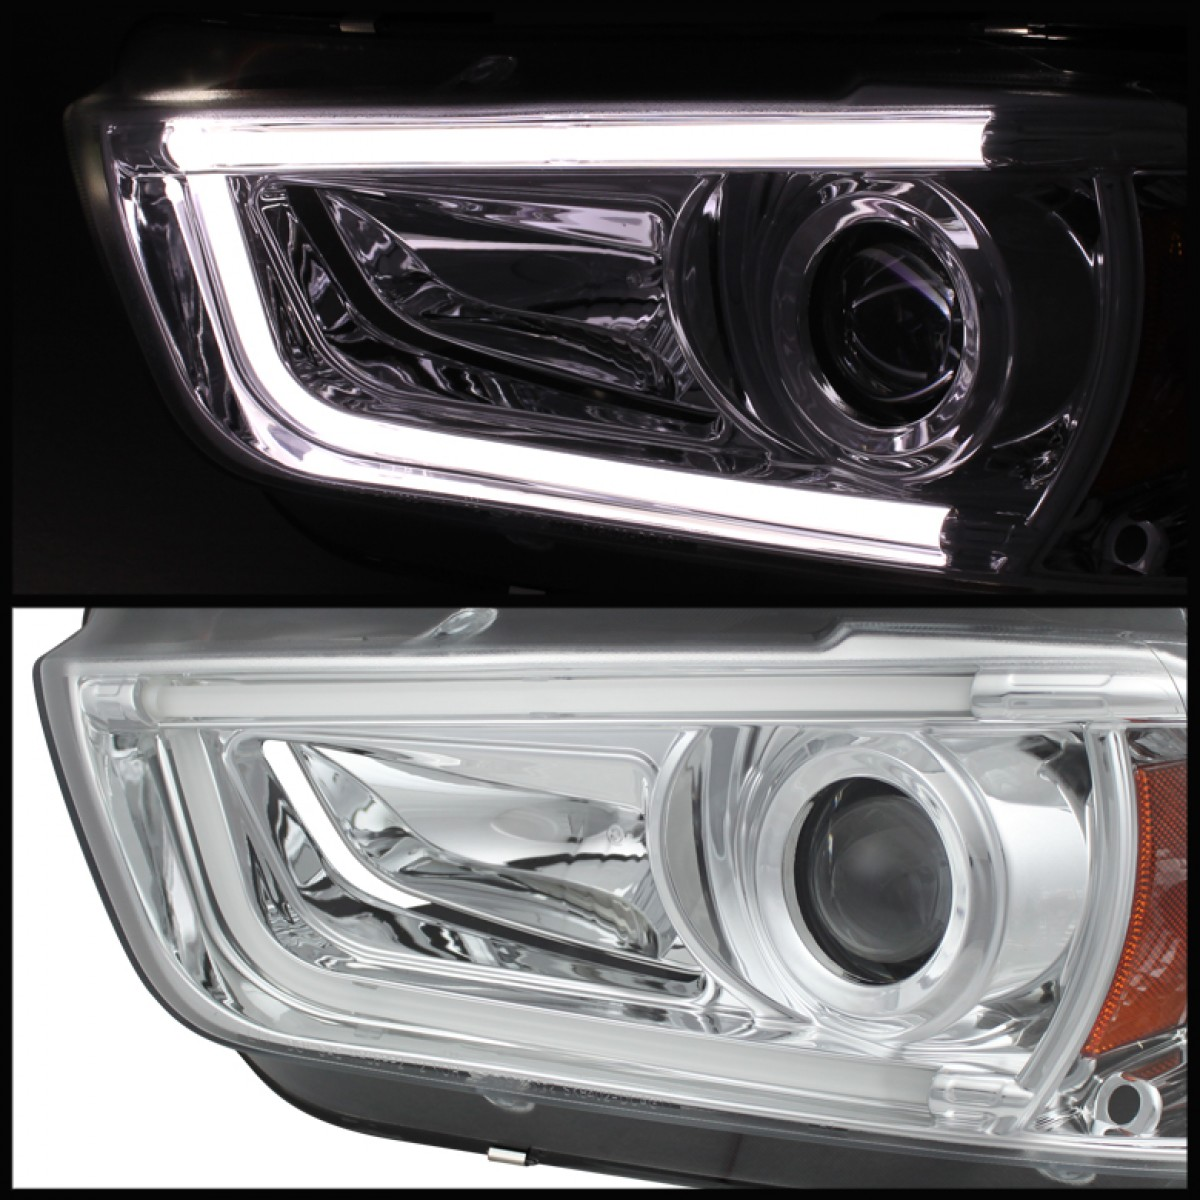 dodge charger xenon kit with 2011 14 Dodge Charger Projector Headlights Light Tube Drl Chrome 3606 on 2011 14 Dodge Charger Projector Headlights Light Tube Drl Chrome 3606 moreover 321907188004 additionally Warning Error Decoder Canceller Capacitor Anti Flicker For Xenon HID Light P 1020926 likewise New Oem 11 14 Ford Edge Xenon Ballast Hid Bulb Kit Control Unit Module Ecu also Dodge Magnum Accessories Parts Carid.